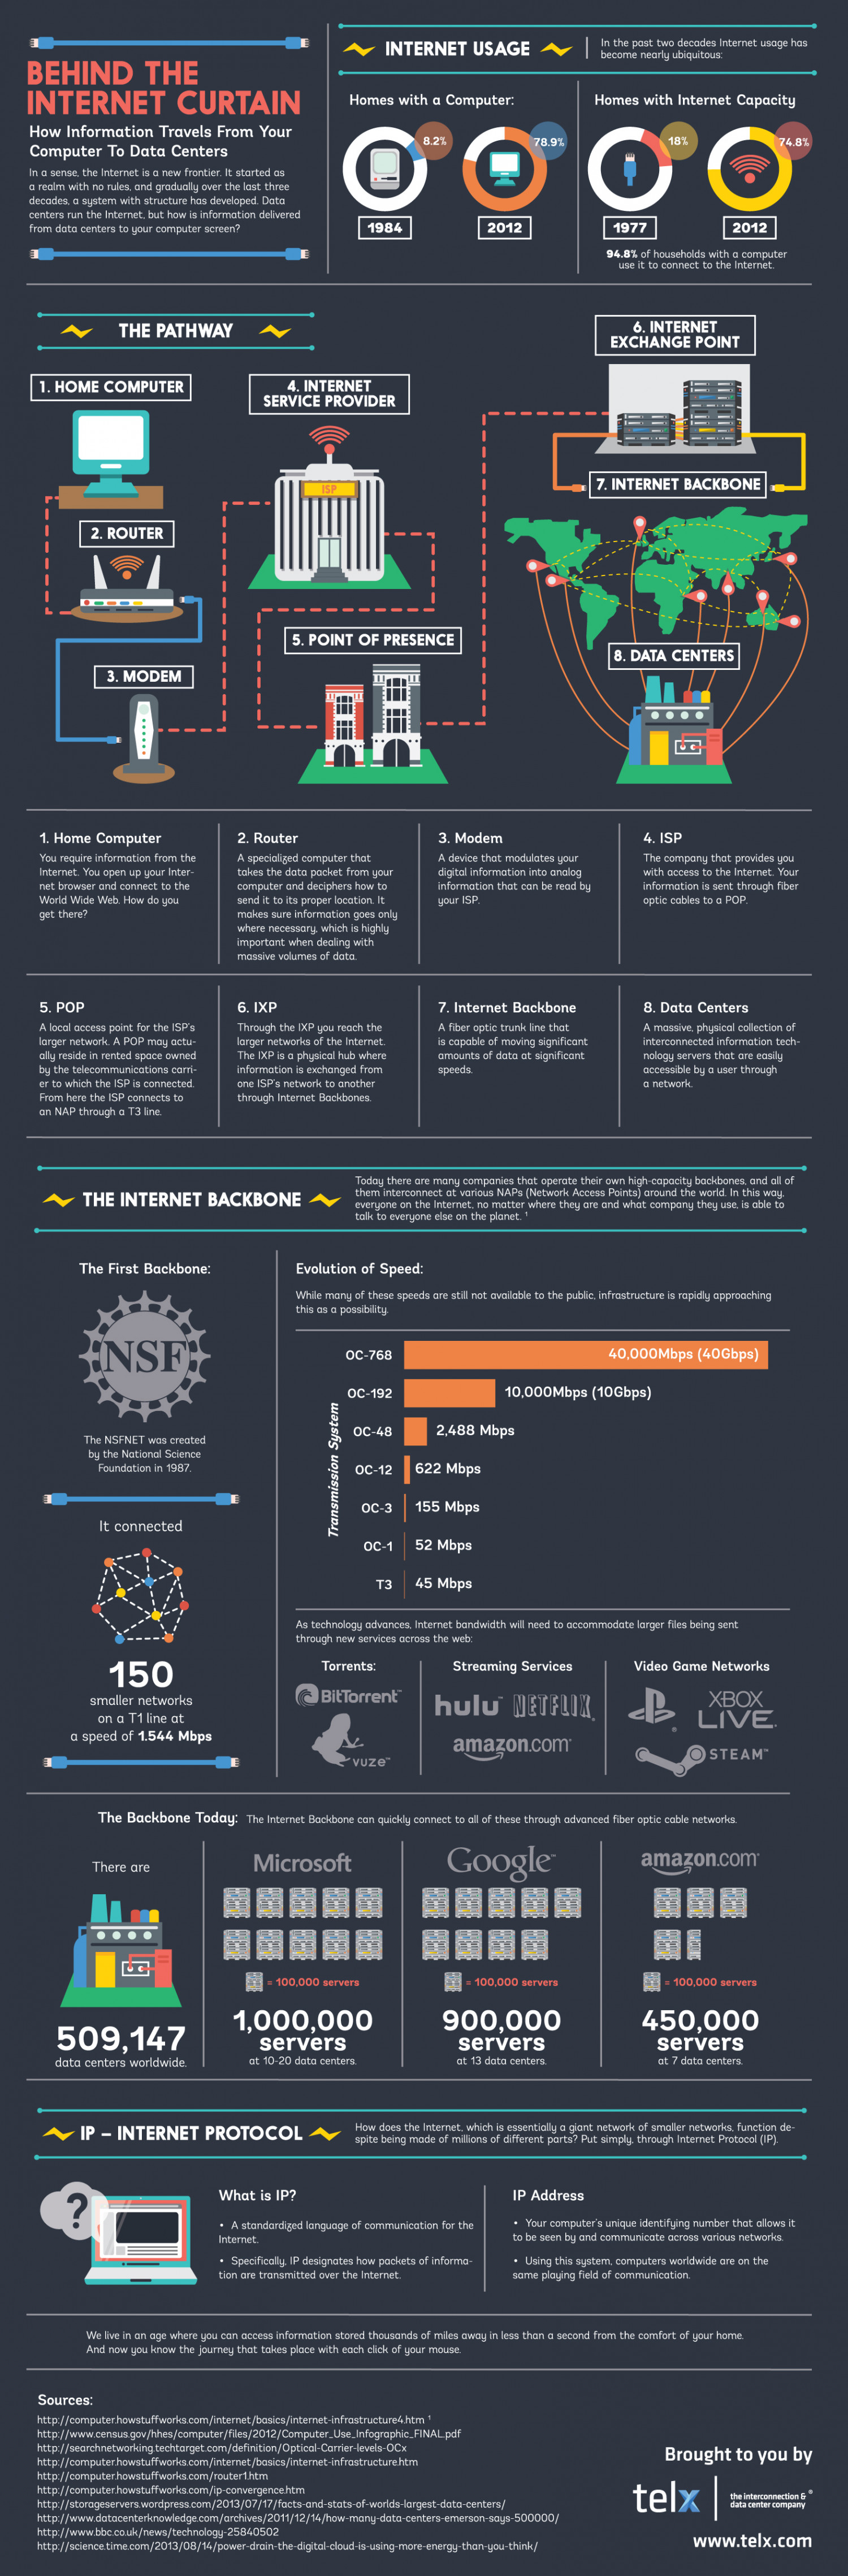 Behind the Internet Curtain Infographic